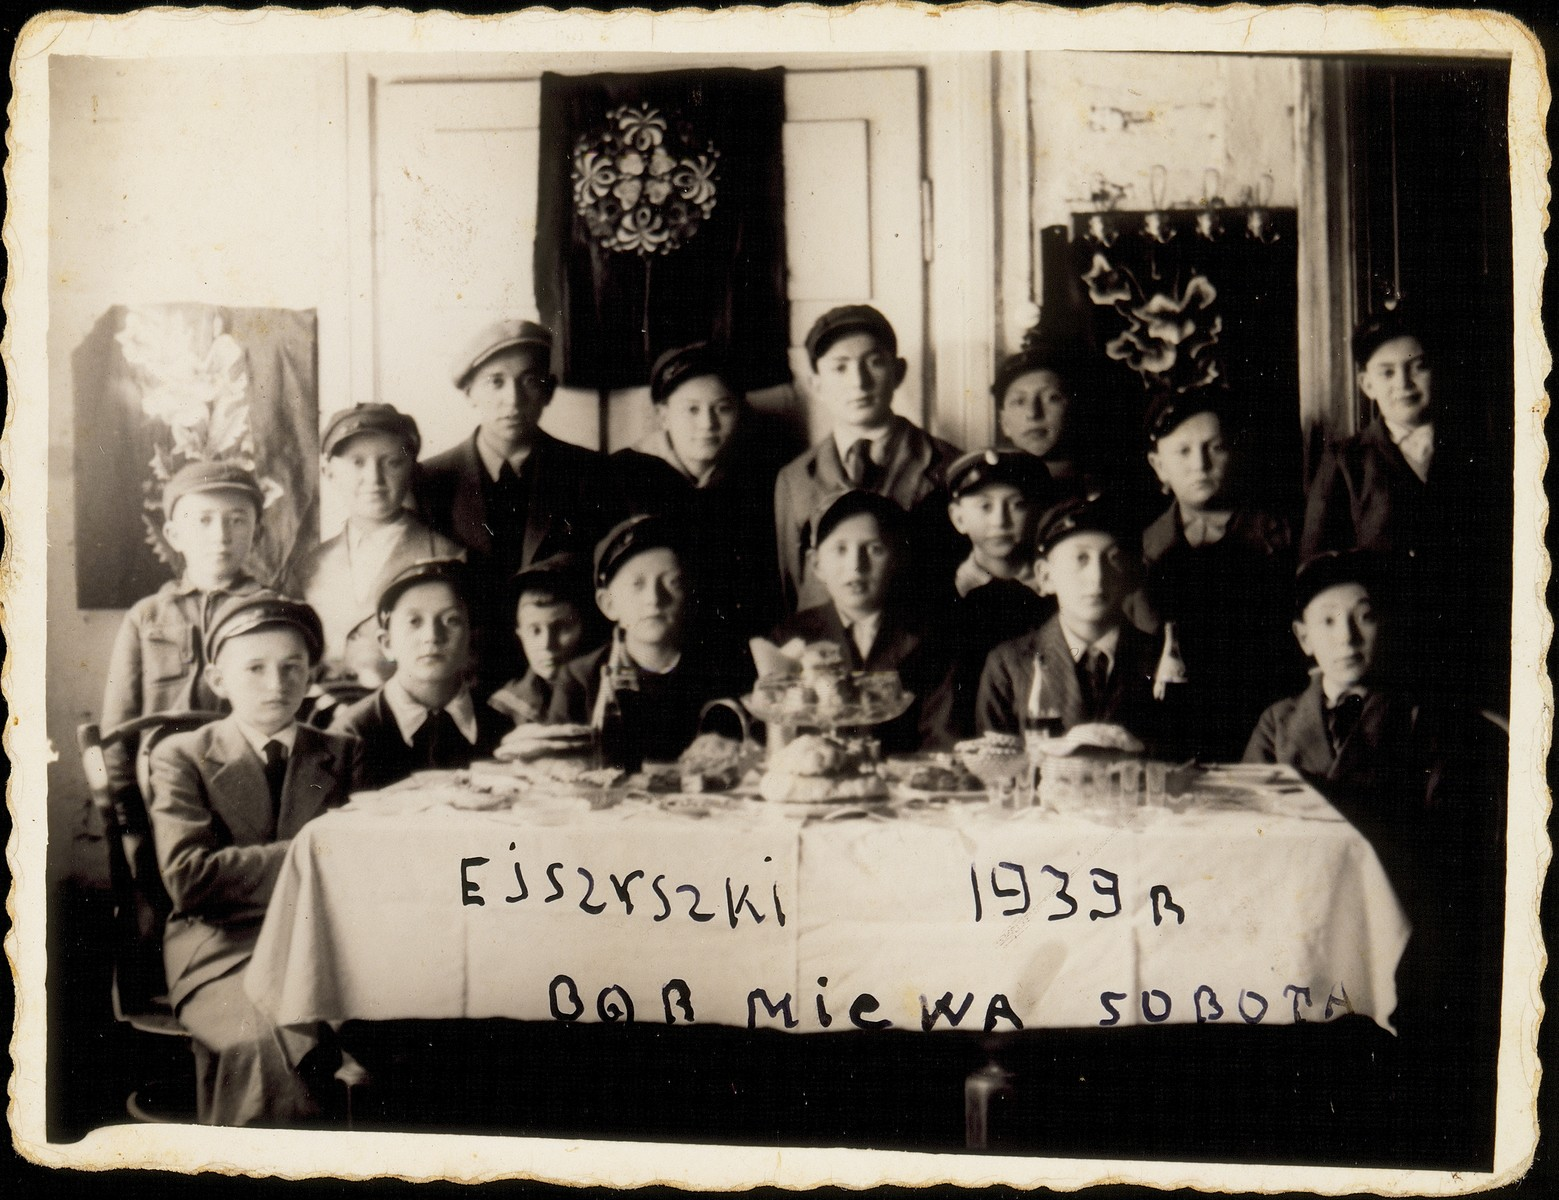 Group portrait of Jewish children attending the Bar Mitzvah party of Avremele Botwinik in Eisiskes.  Among those pictured are Avremele Botwinik (seated behind the cake), Moshe Bastunski (seated fourth from the right, next to Avremele), Avigdor Katz (seated second from the right), Elisha Koppelman (first on the left), Hillel Botwinik (a brother, standing third from the left), Yitzhak Botwinik (a brother, standing fifth from the left).  Only the Bar Mitzvah boy survived the war (as a partisan).  Elisha Koppelman was killed by members of the Polish Home Army.  The others were killed by the Germans during the September 1941 mass shooting action in Eisiskes.